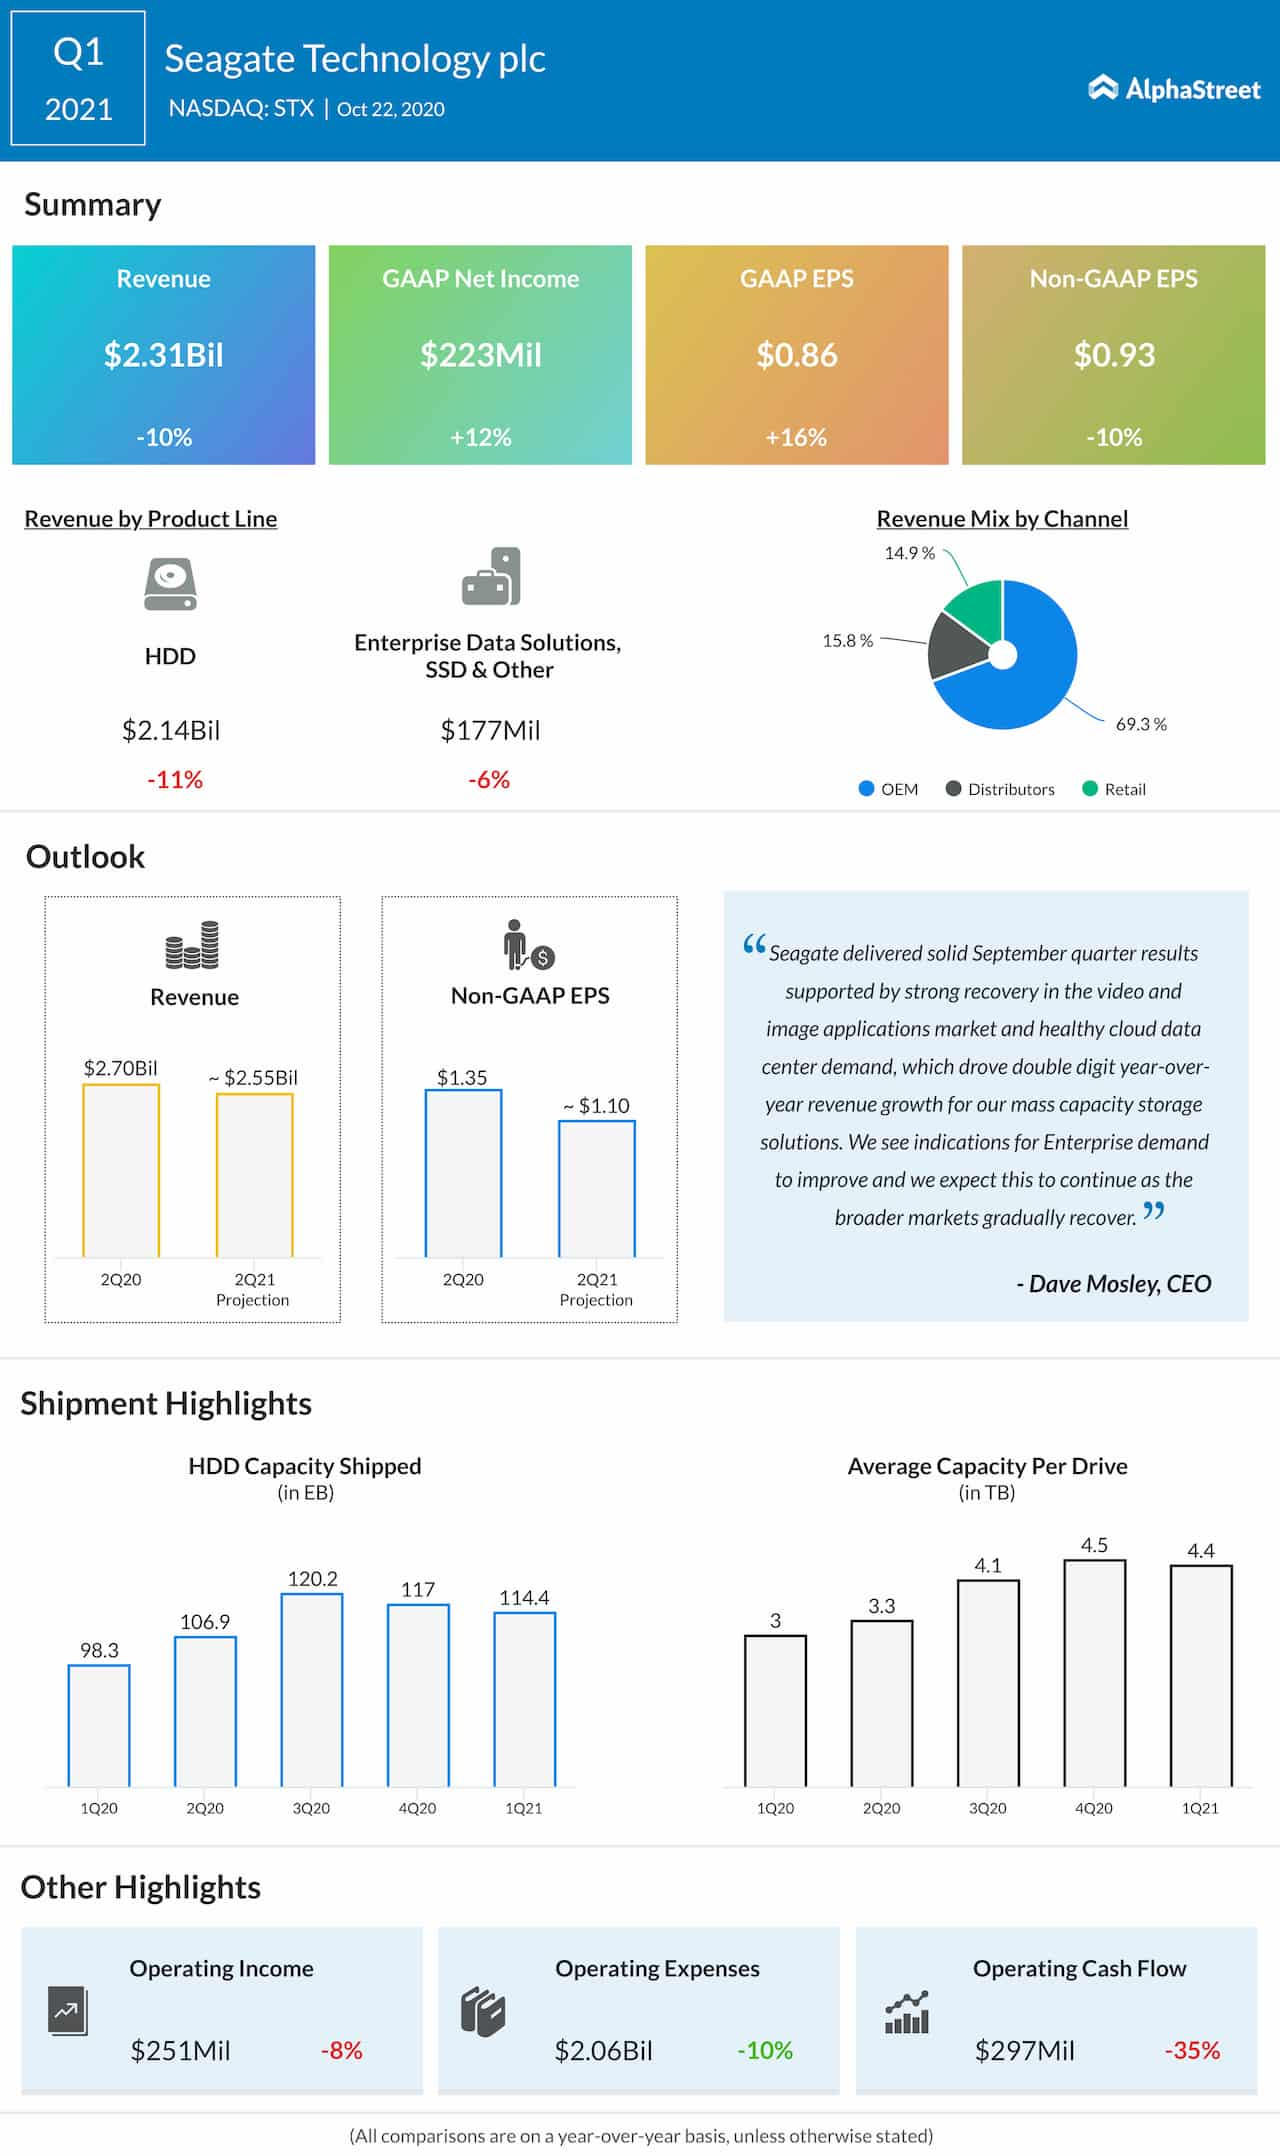 Seagate Technology Q1 2021 Earnings Infographic